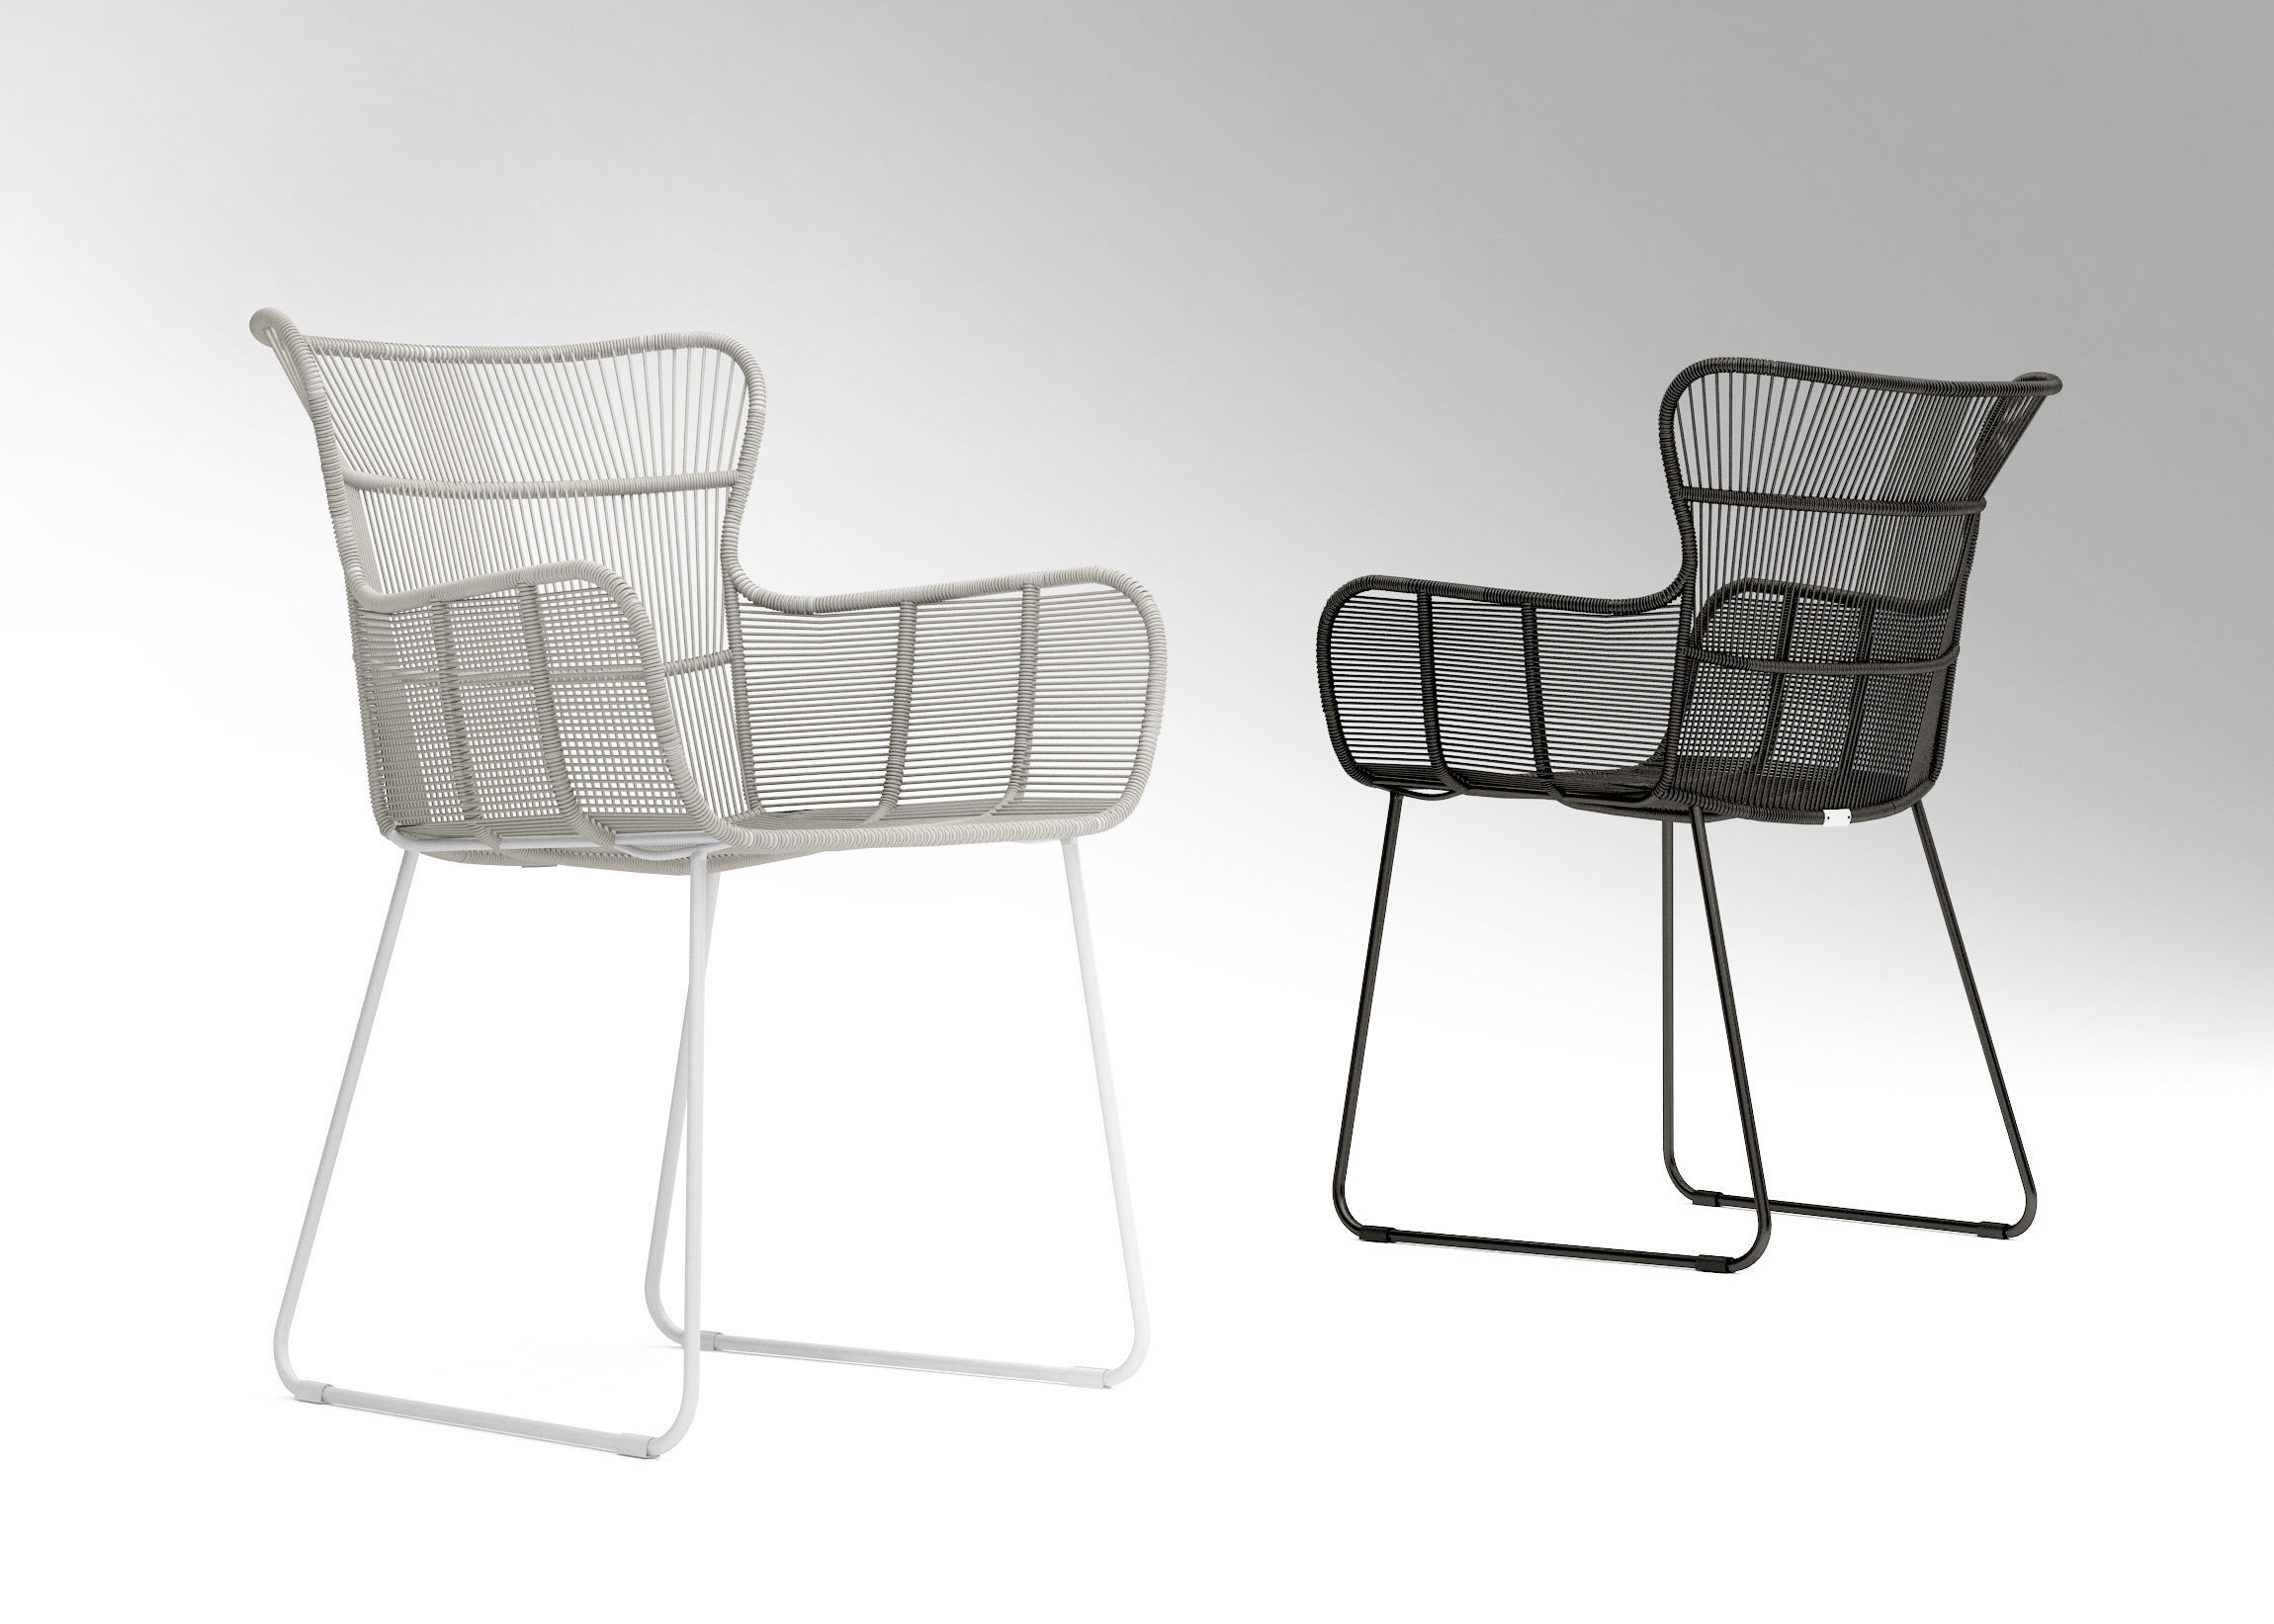 Groovy Coco Republic Amalfi Outdoor Dining Chair 3D Model Ibusinesslaw Wood Chair Design Ideas Ibusinesslaworg